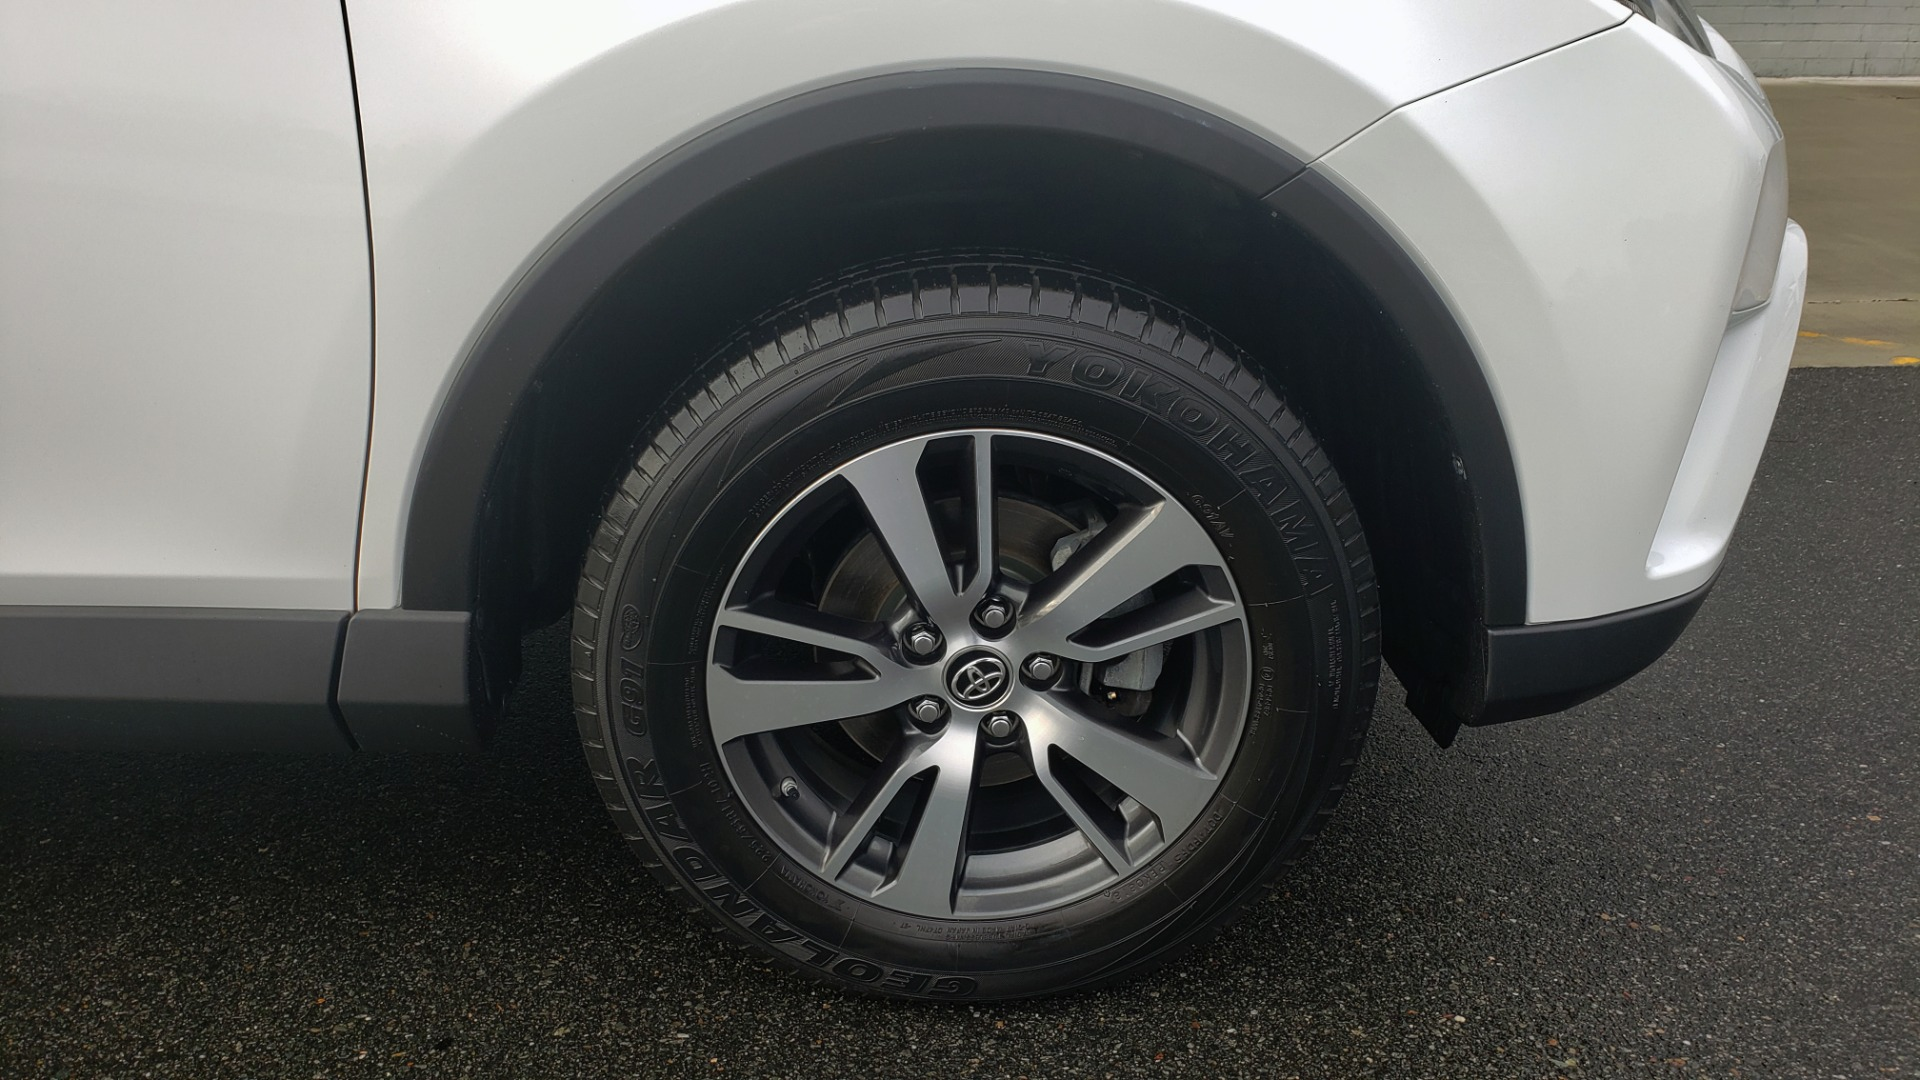 Used 2018 Toyota RAV4 XLE / FWD / 4-CYL / 6-SPD AUTO / BSM / REAR CROSS TRAFFIC ALERT for sale Sold at Formula Imports in Charlotte NC 28227 81